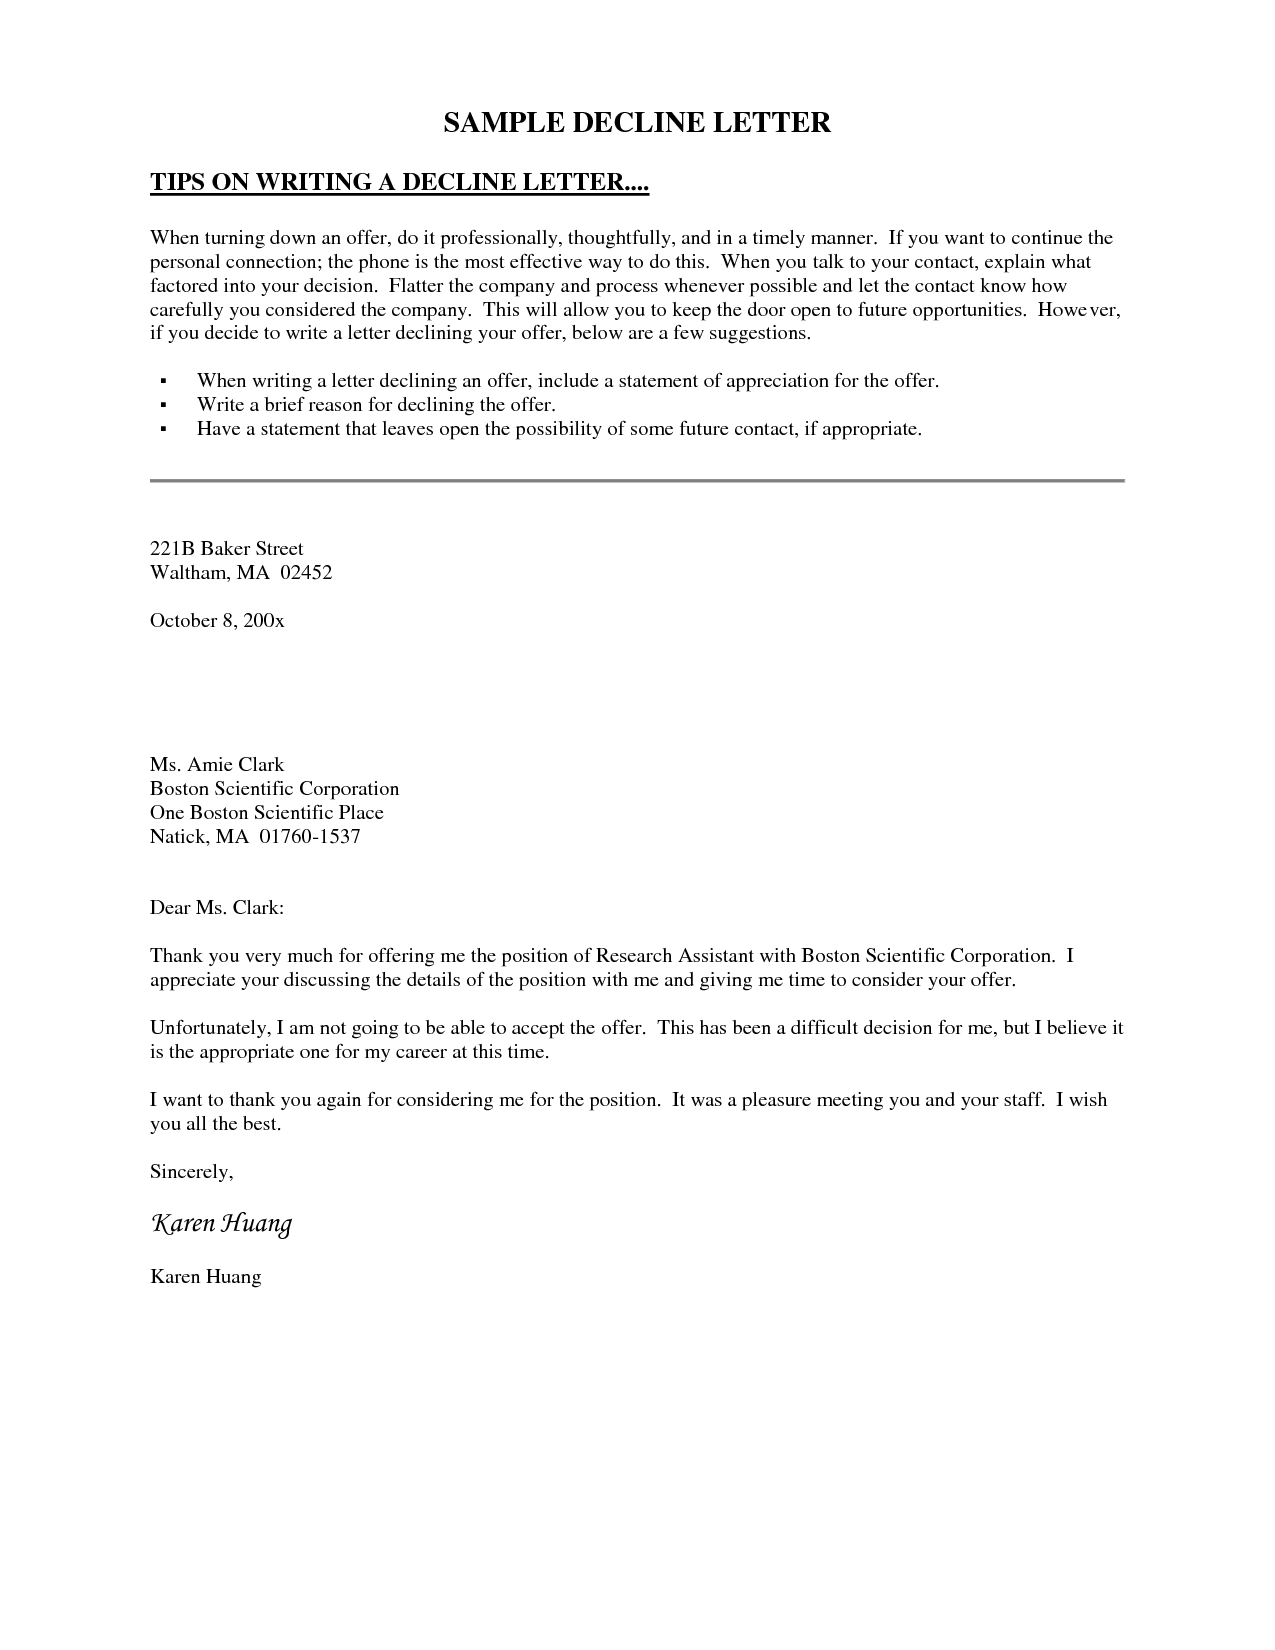 Proof Of Loss Of Coverage Letter Template - Decline Invitation Letter This Letter Template Declines An